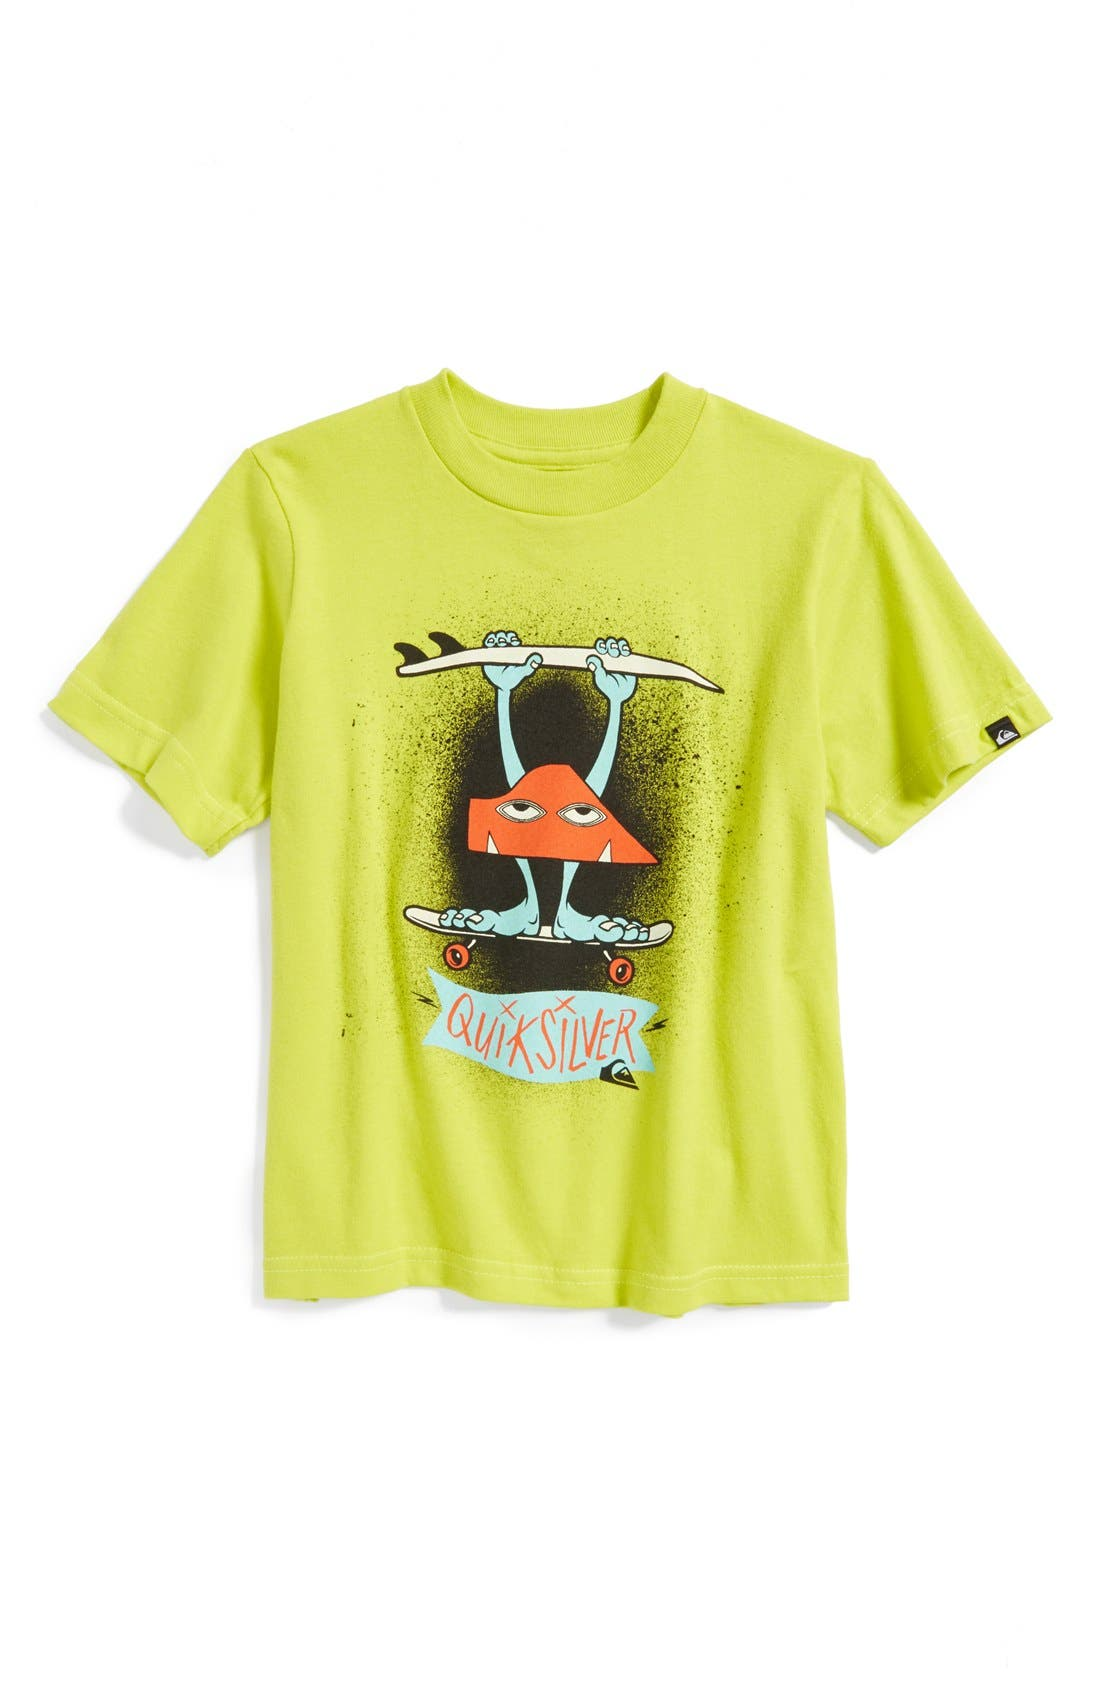 Alternate Image 1 Selected - Quiksilver 'Grem Grom' Graphic T-Shirt (Toddler Boys)